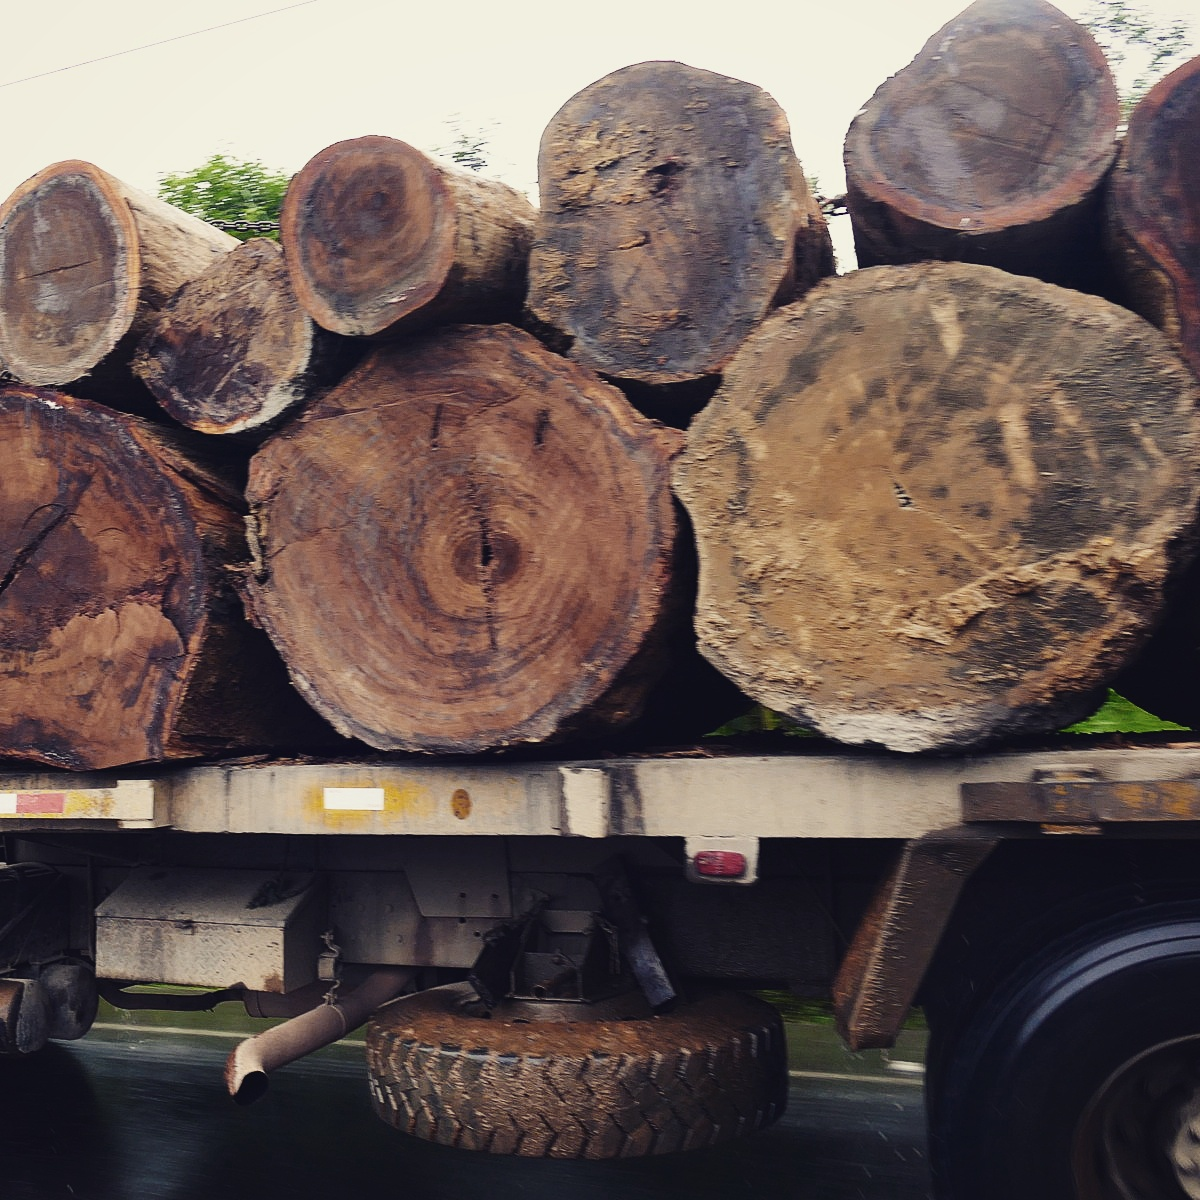 A load of logs leaves the Choco lowlands of northwest Ecuador. Noah Strycker